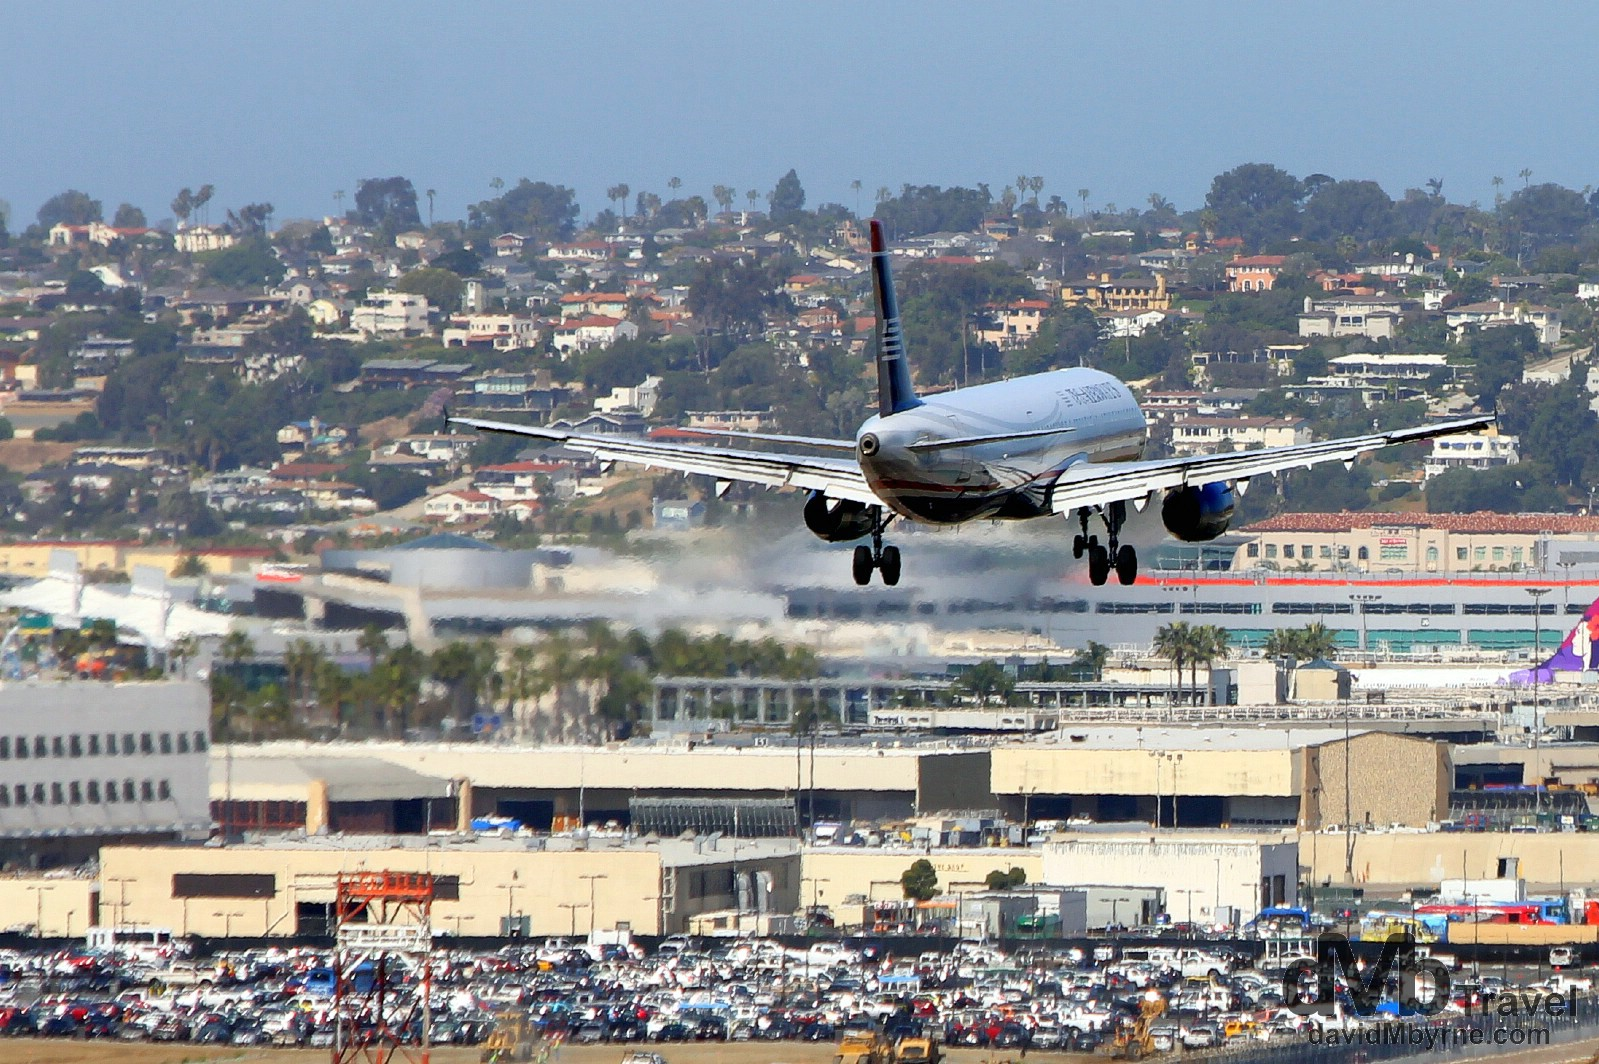 A plane coming in to land at San Diego International Airport as seen from Laurel Street. San Diego, California, USA. April 17th 2013.